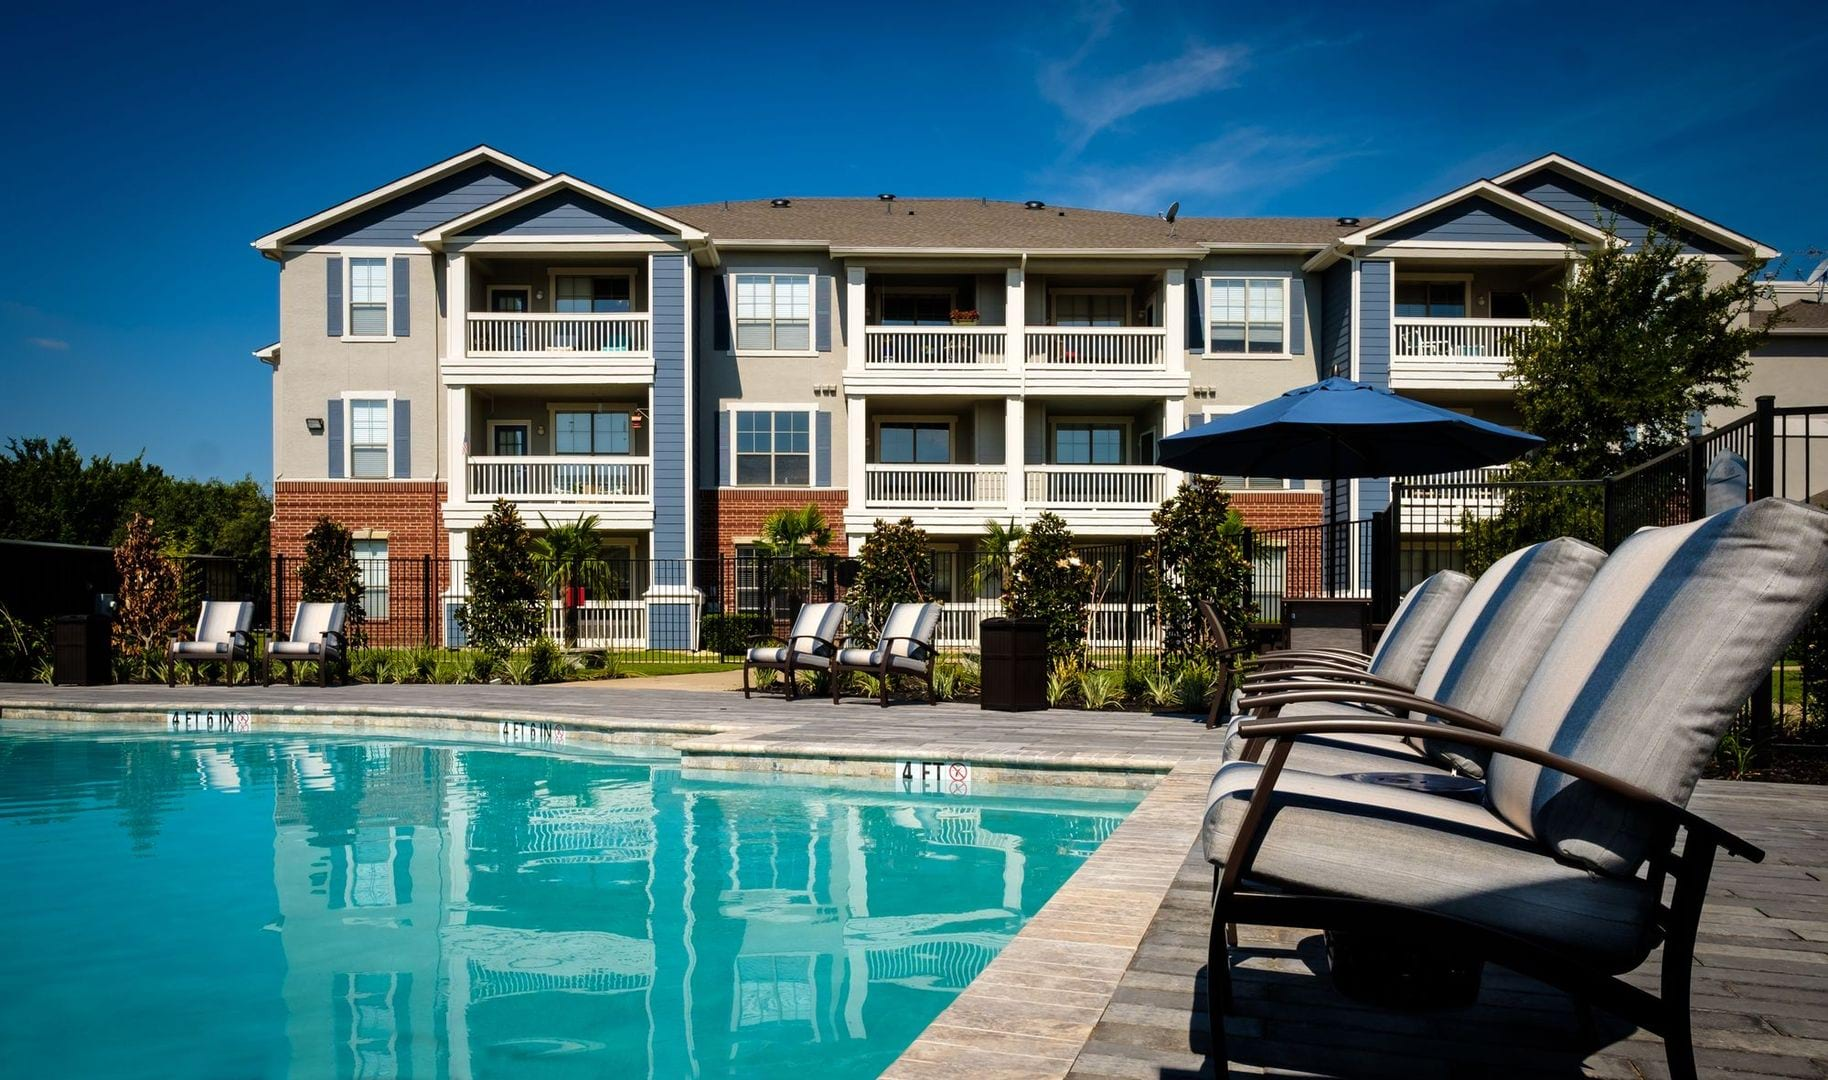 Apartments For Rent In Lewisville Tx Attiva Lewisville Home